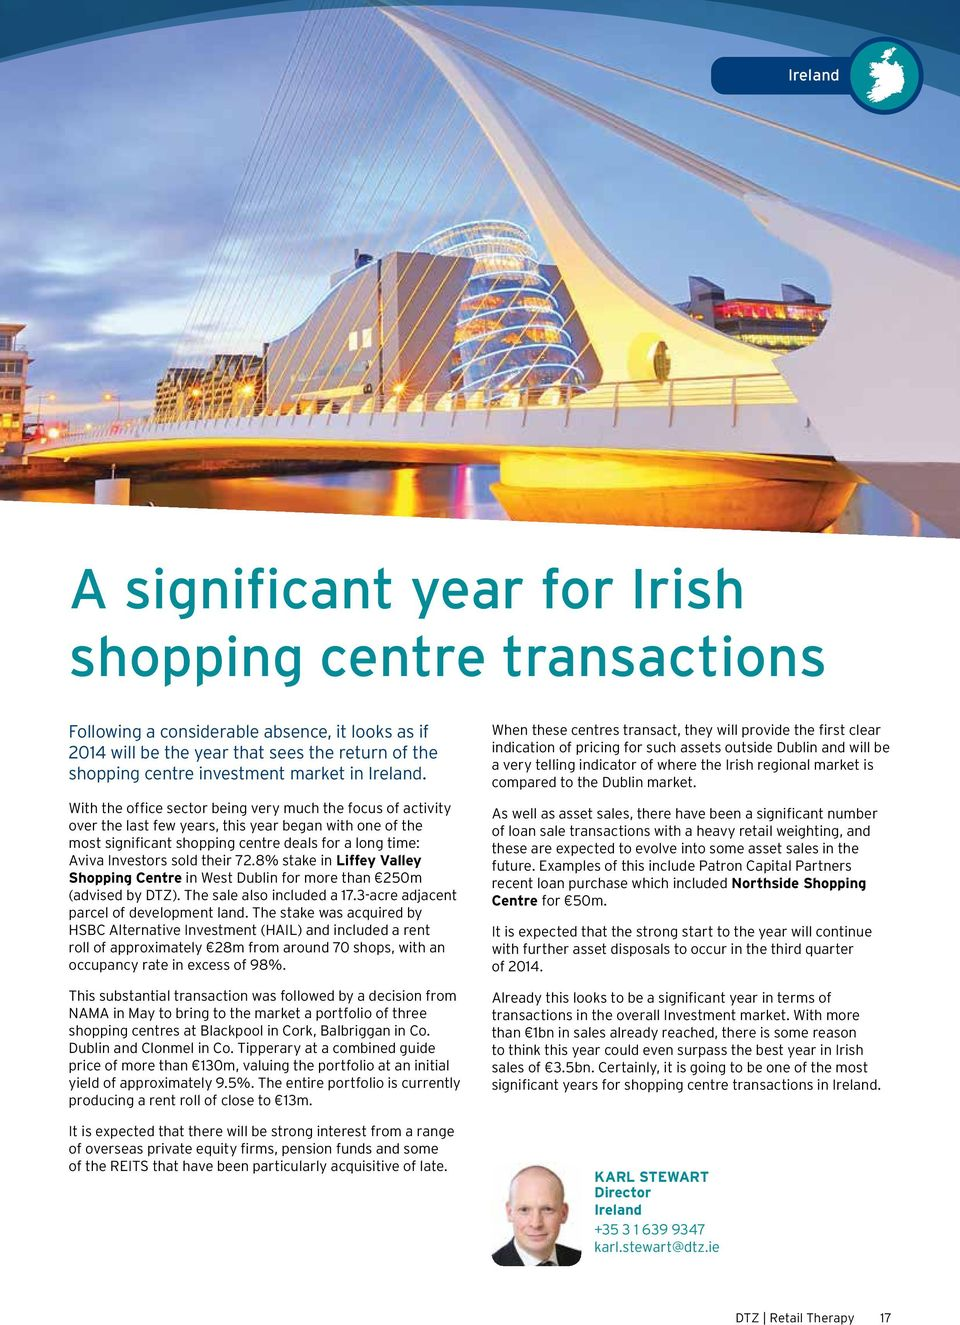 With the office sector being very much the focus of activity over the last few years, this year began with one of the most significant shopping centre deals for a long time: Aviva Investors sold